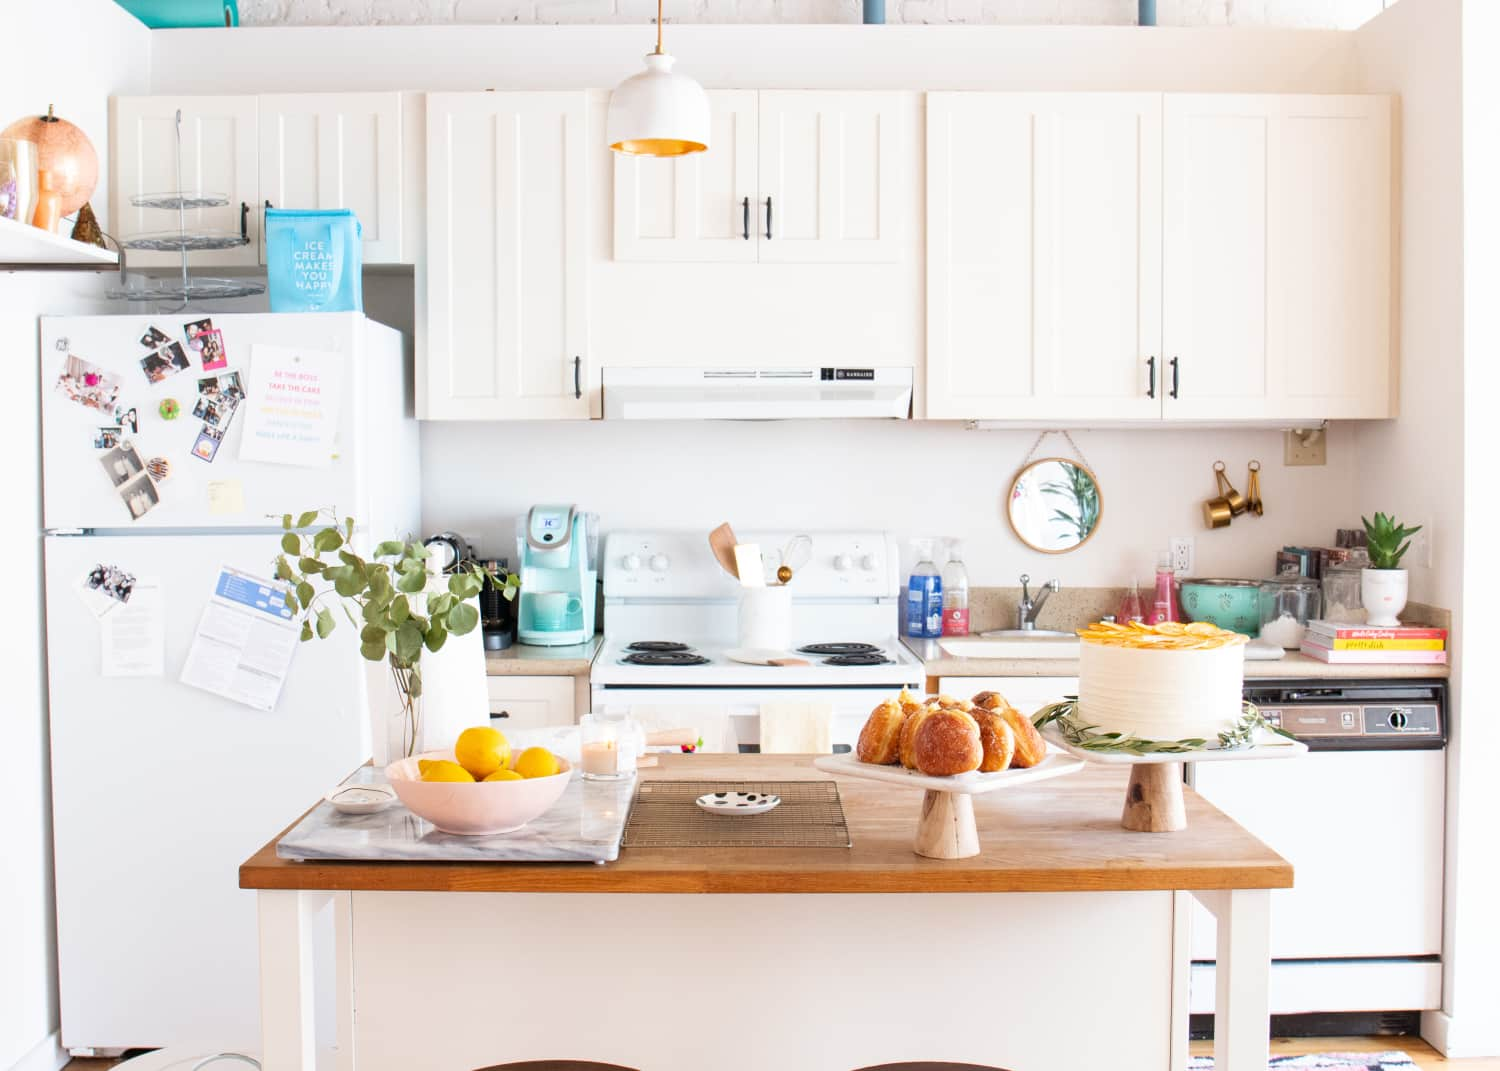 5 Cheap Ways to Make Your Kitchen Cabinets Feel Totally New